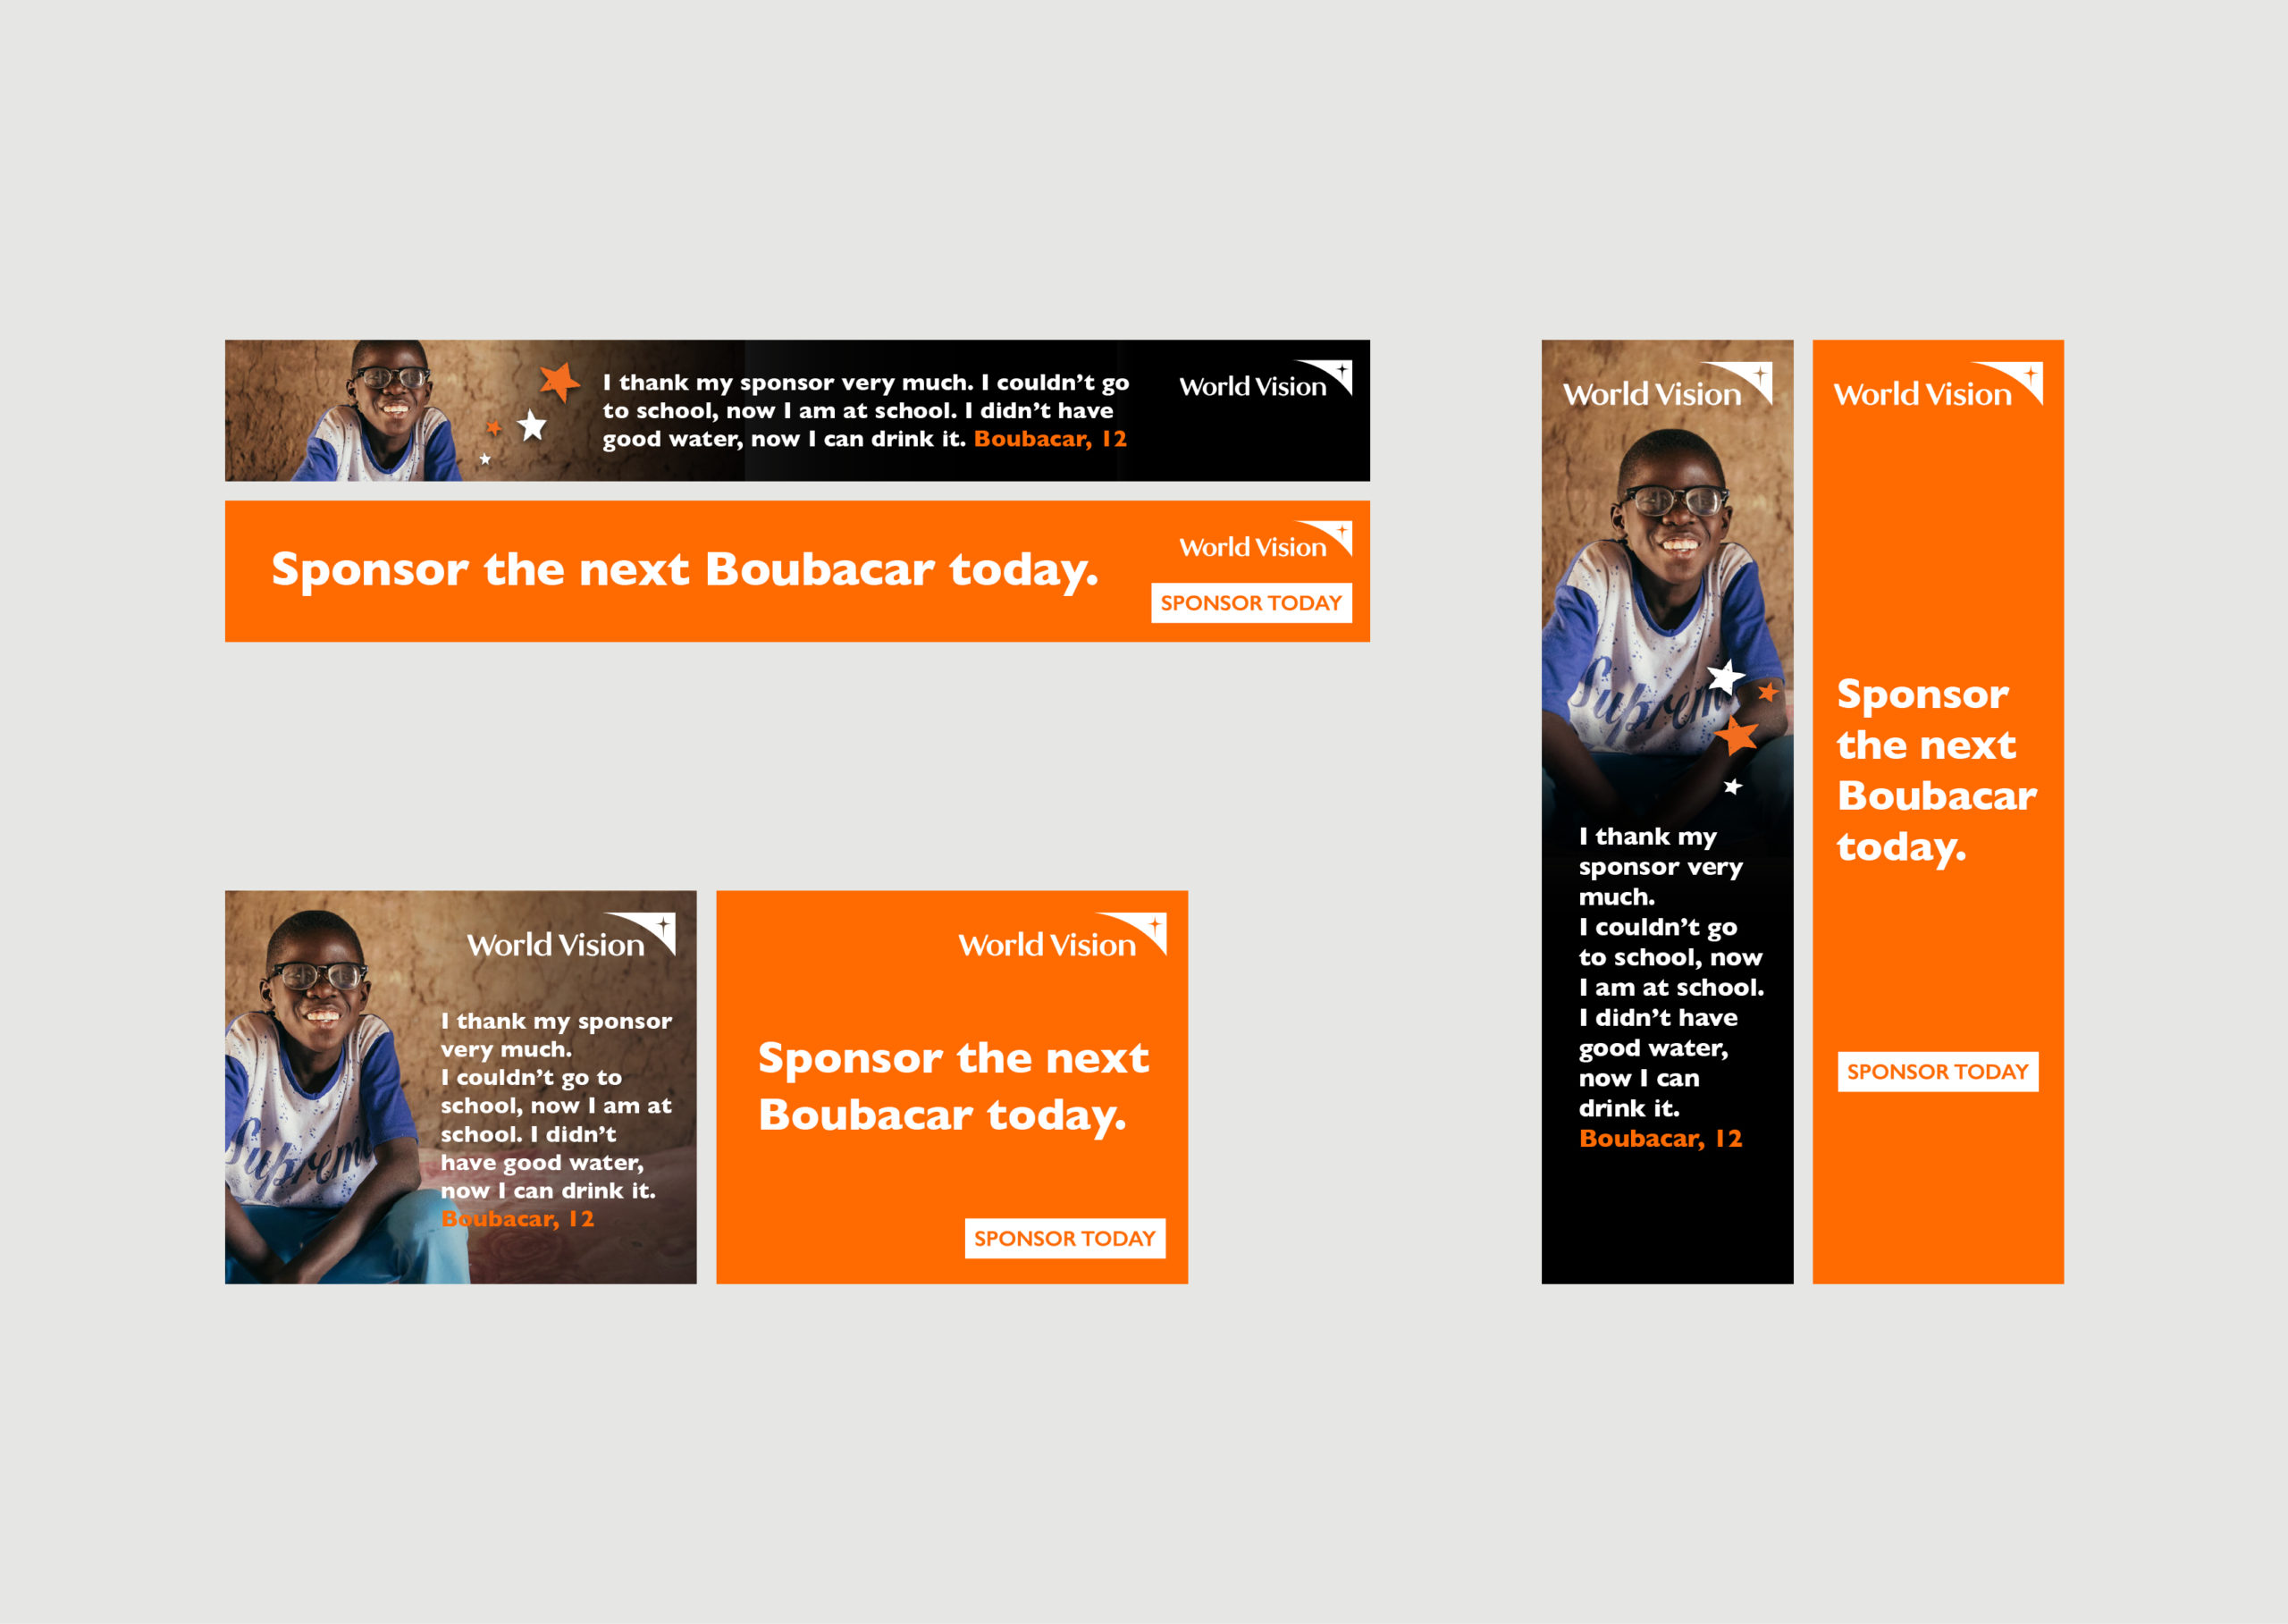 World Vision Digital Ads showing smiling child portrait and quote